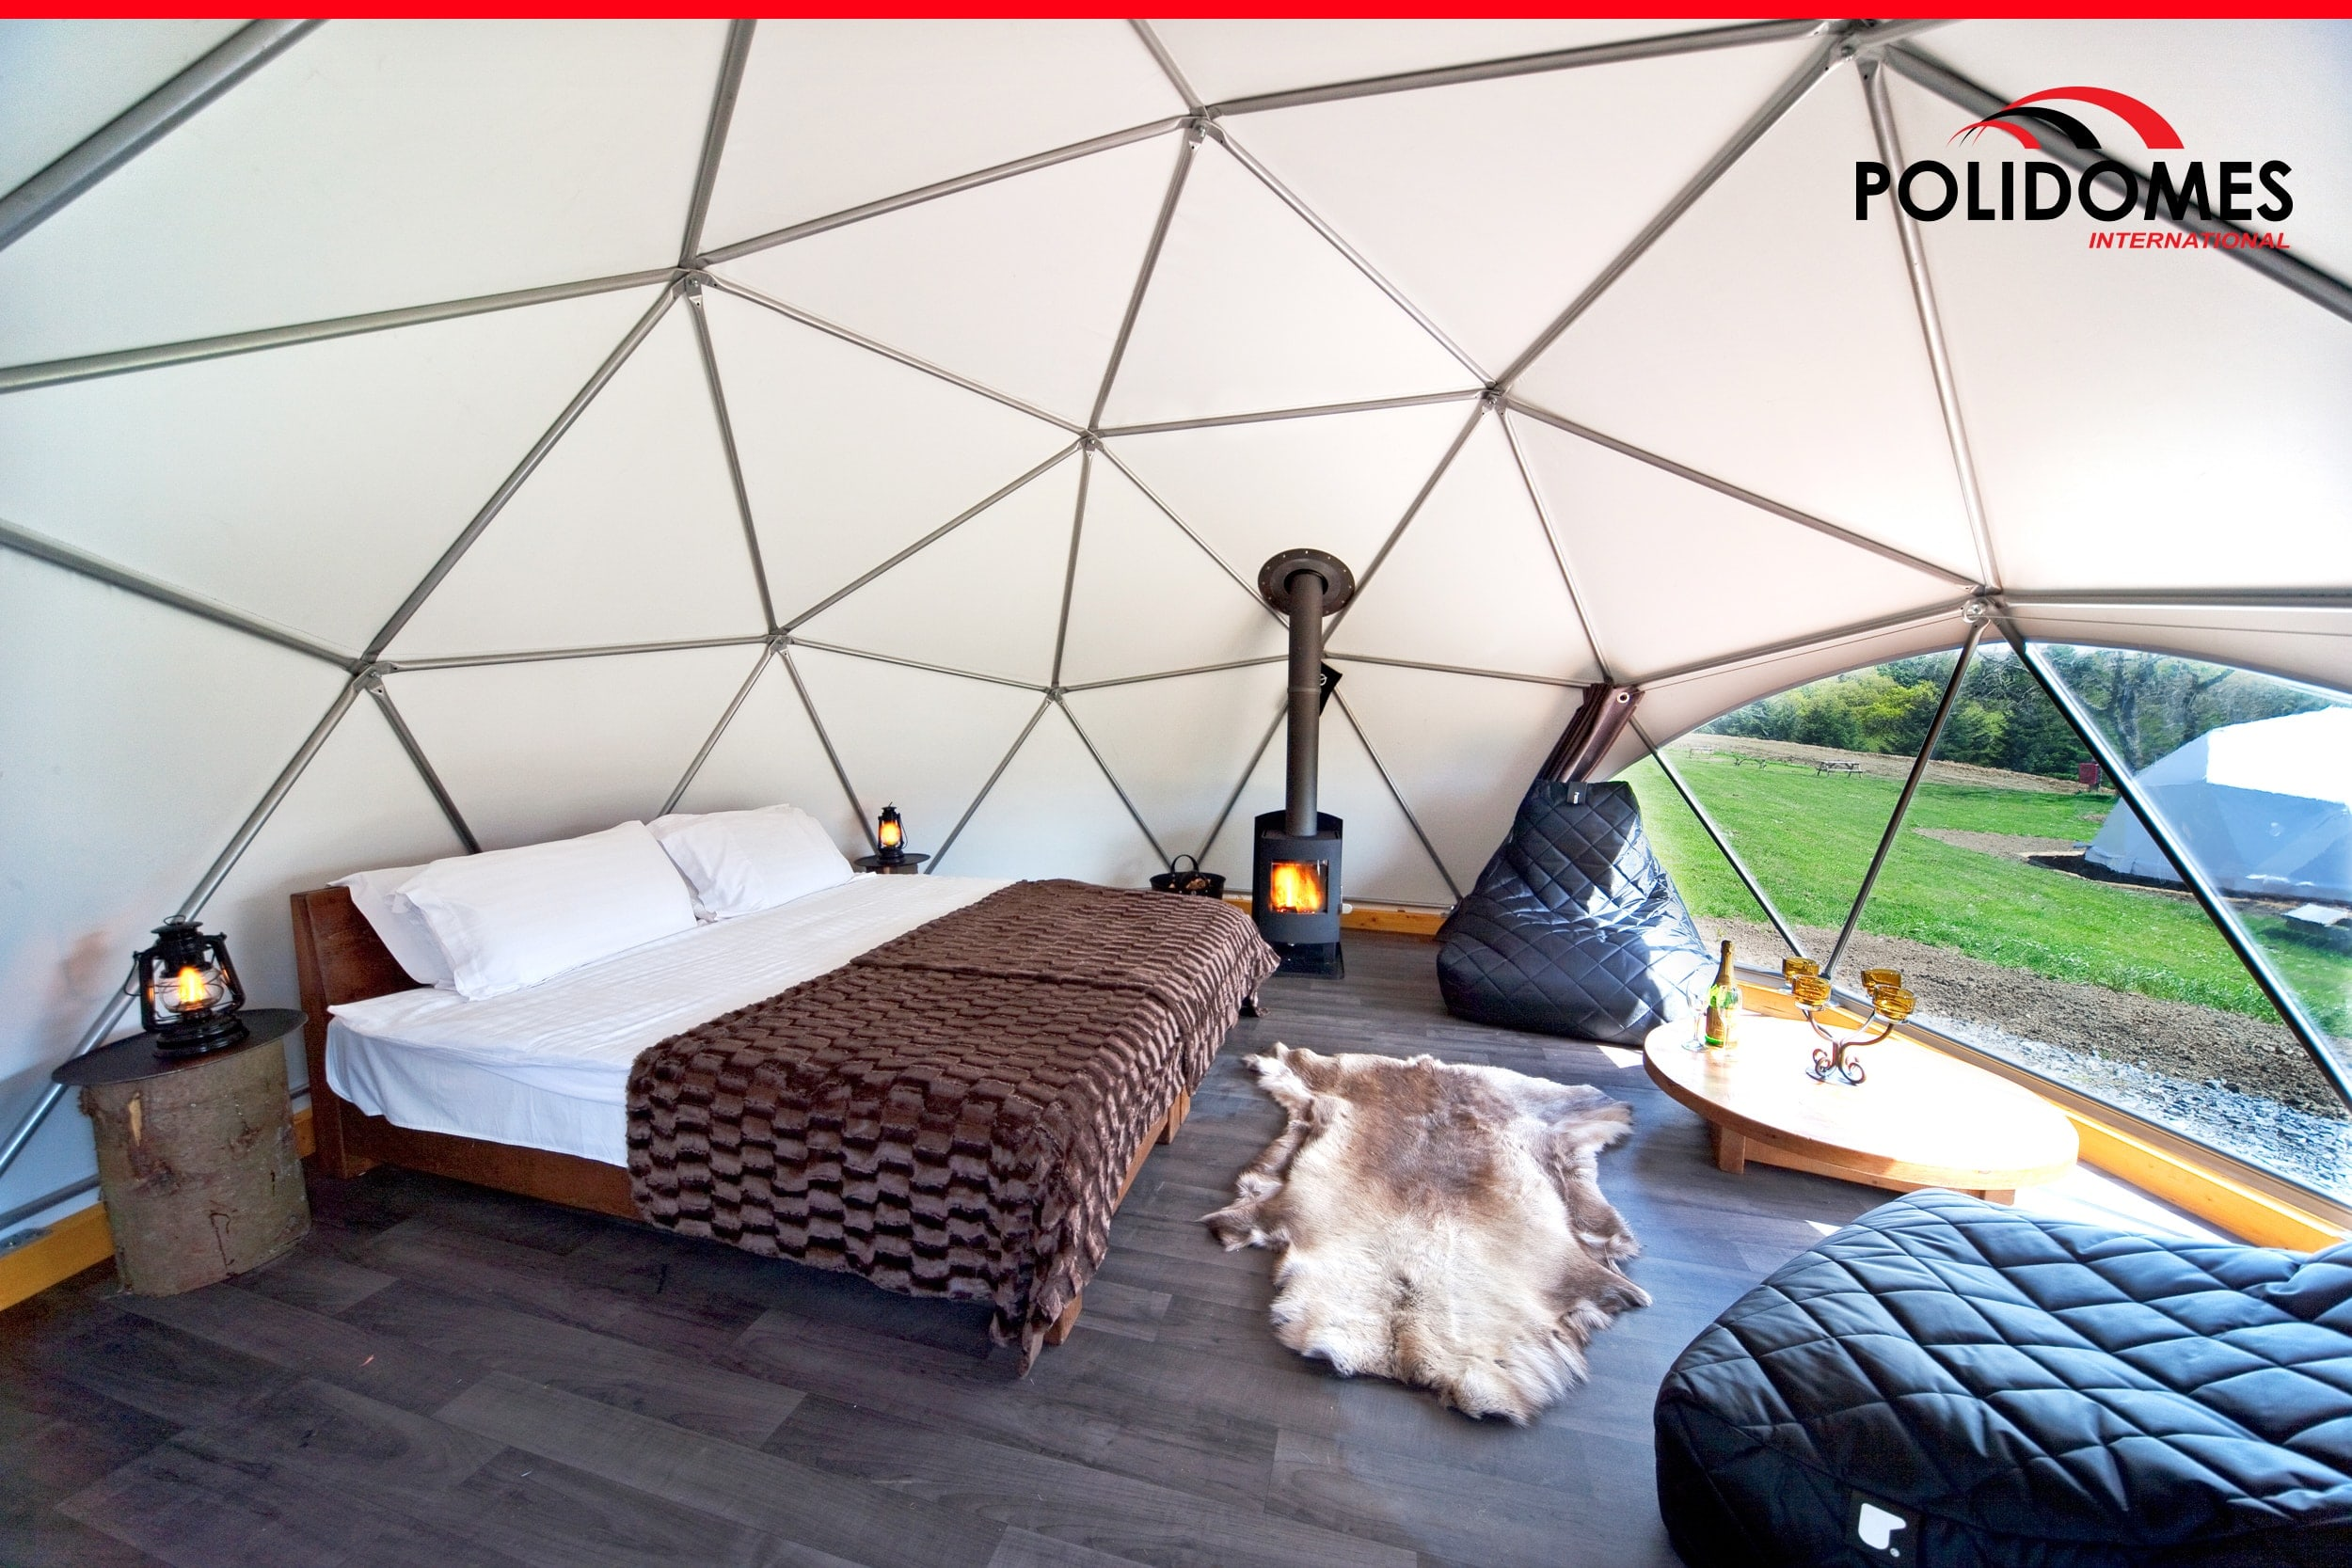 Polidomes glamping dome